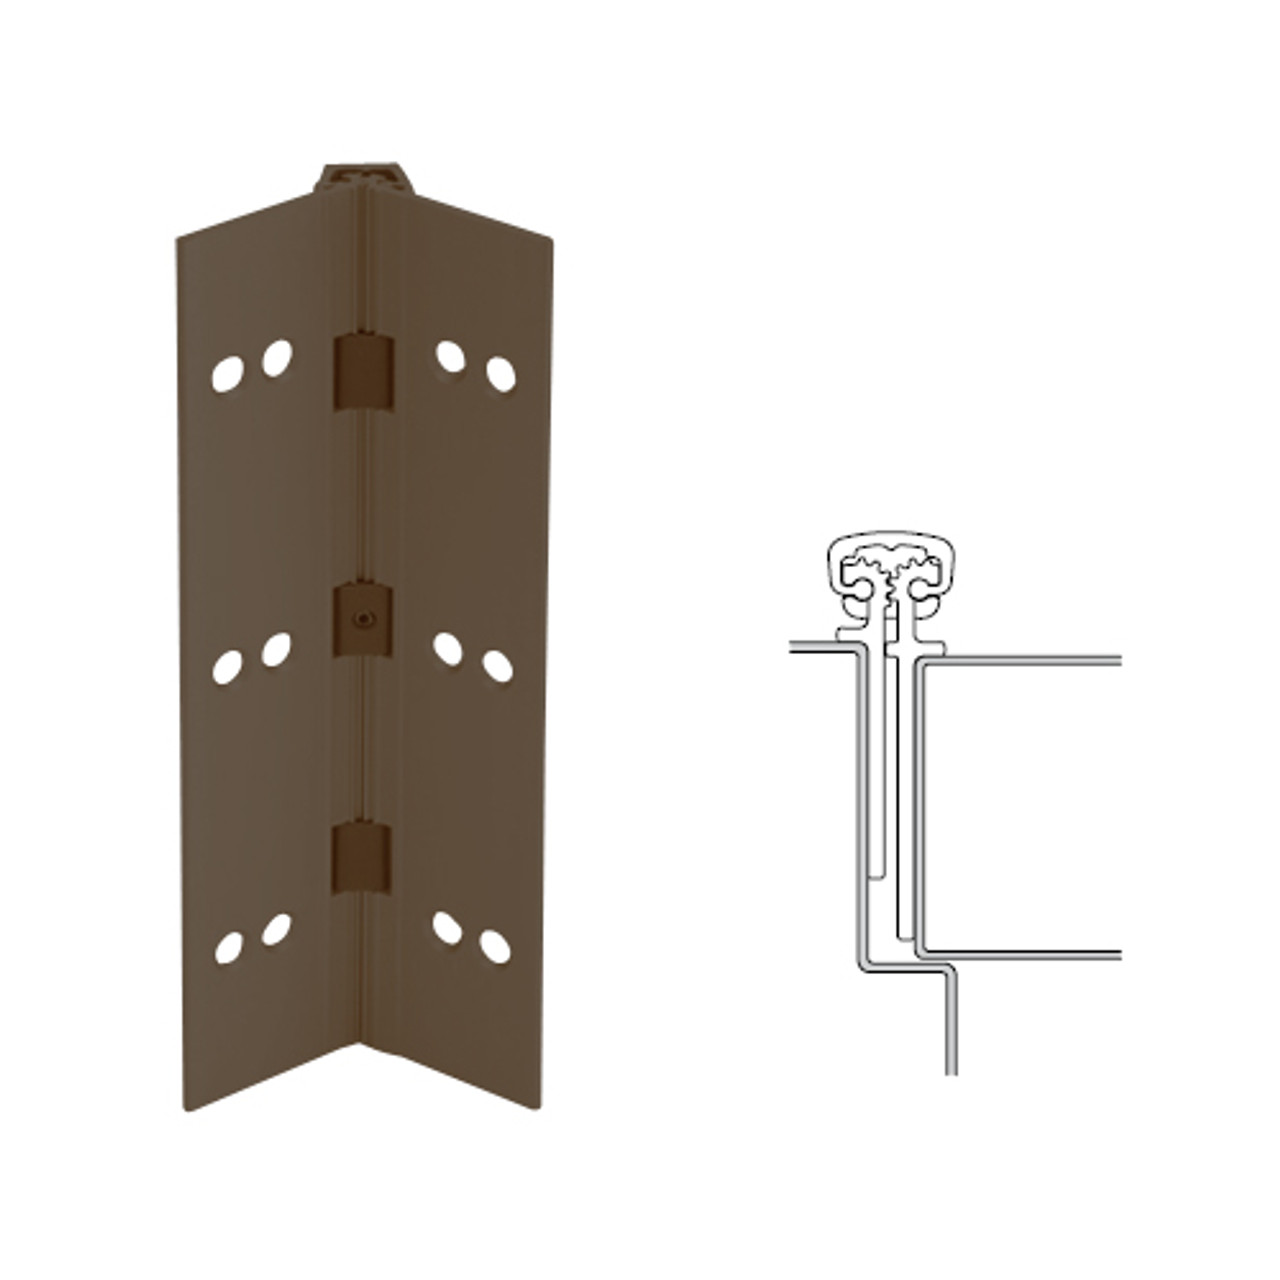 026XY-313AN-85-SECWDHM IVES Full Mortise Continuous Geared Hinges with Security Screws - Hex Pin Drive in Dark Bronze Anodized